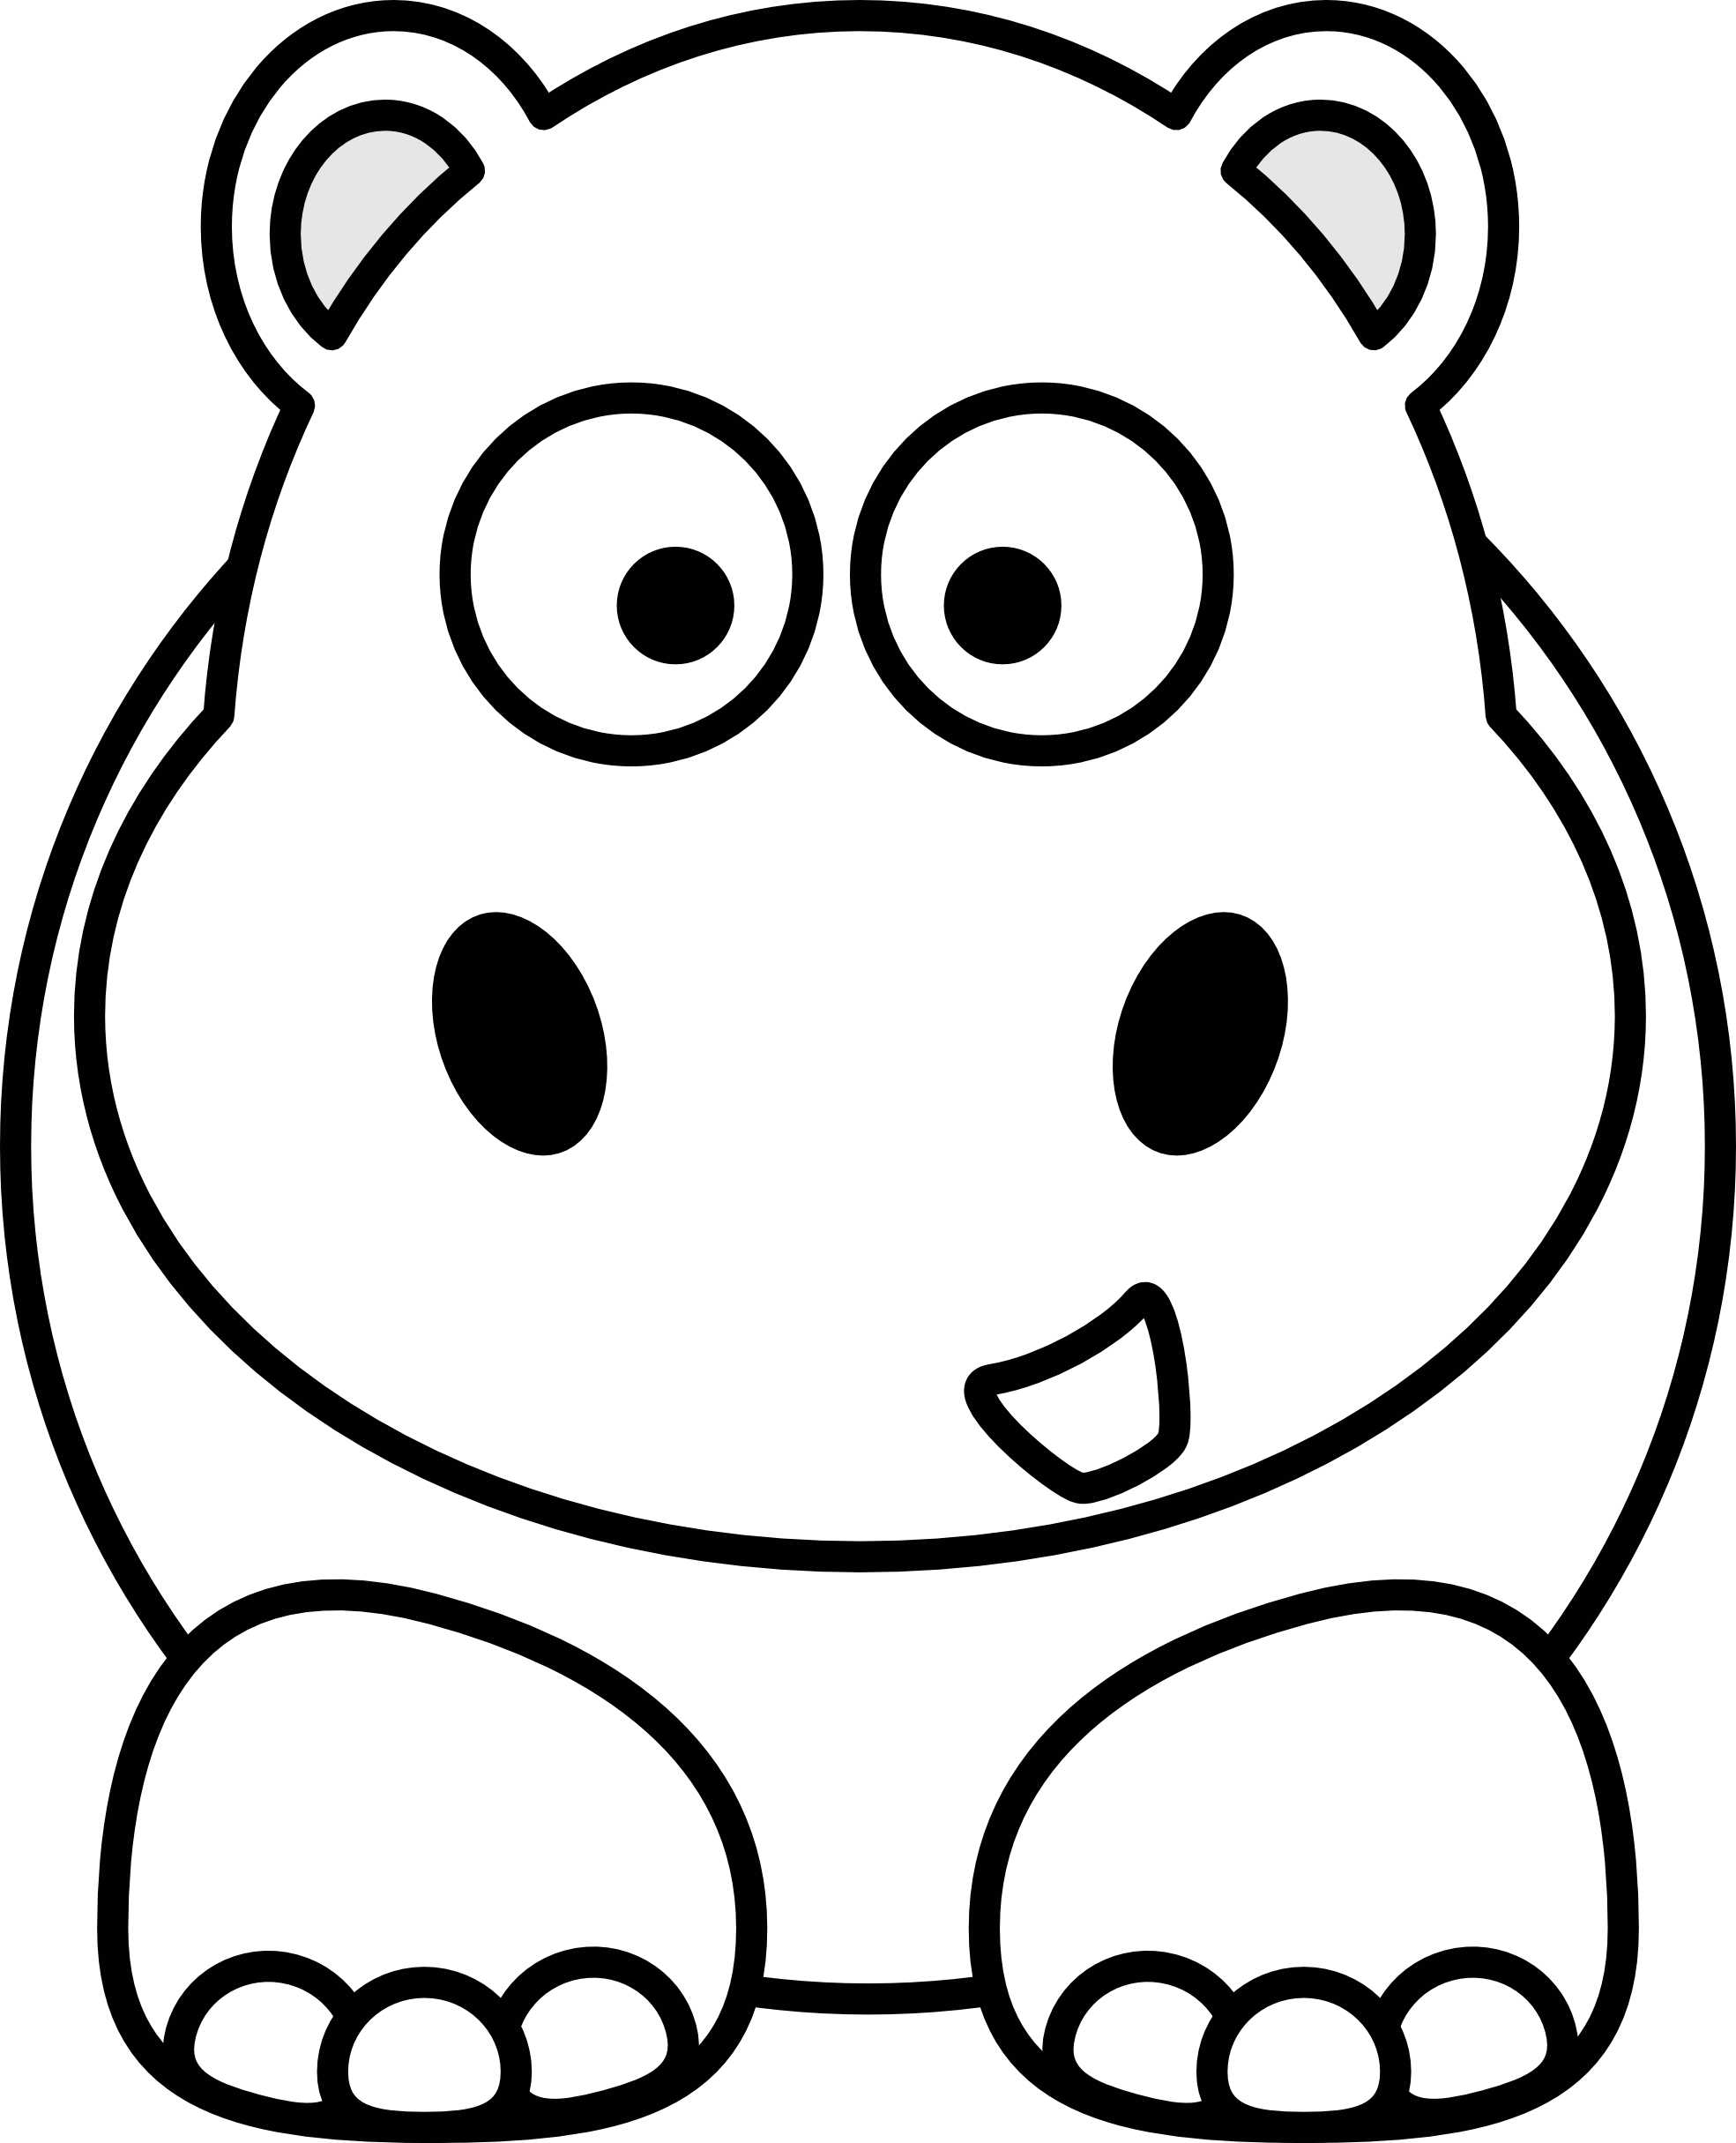 Hippo clipart drawn. Mouth coloring pages printable